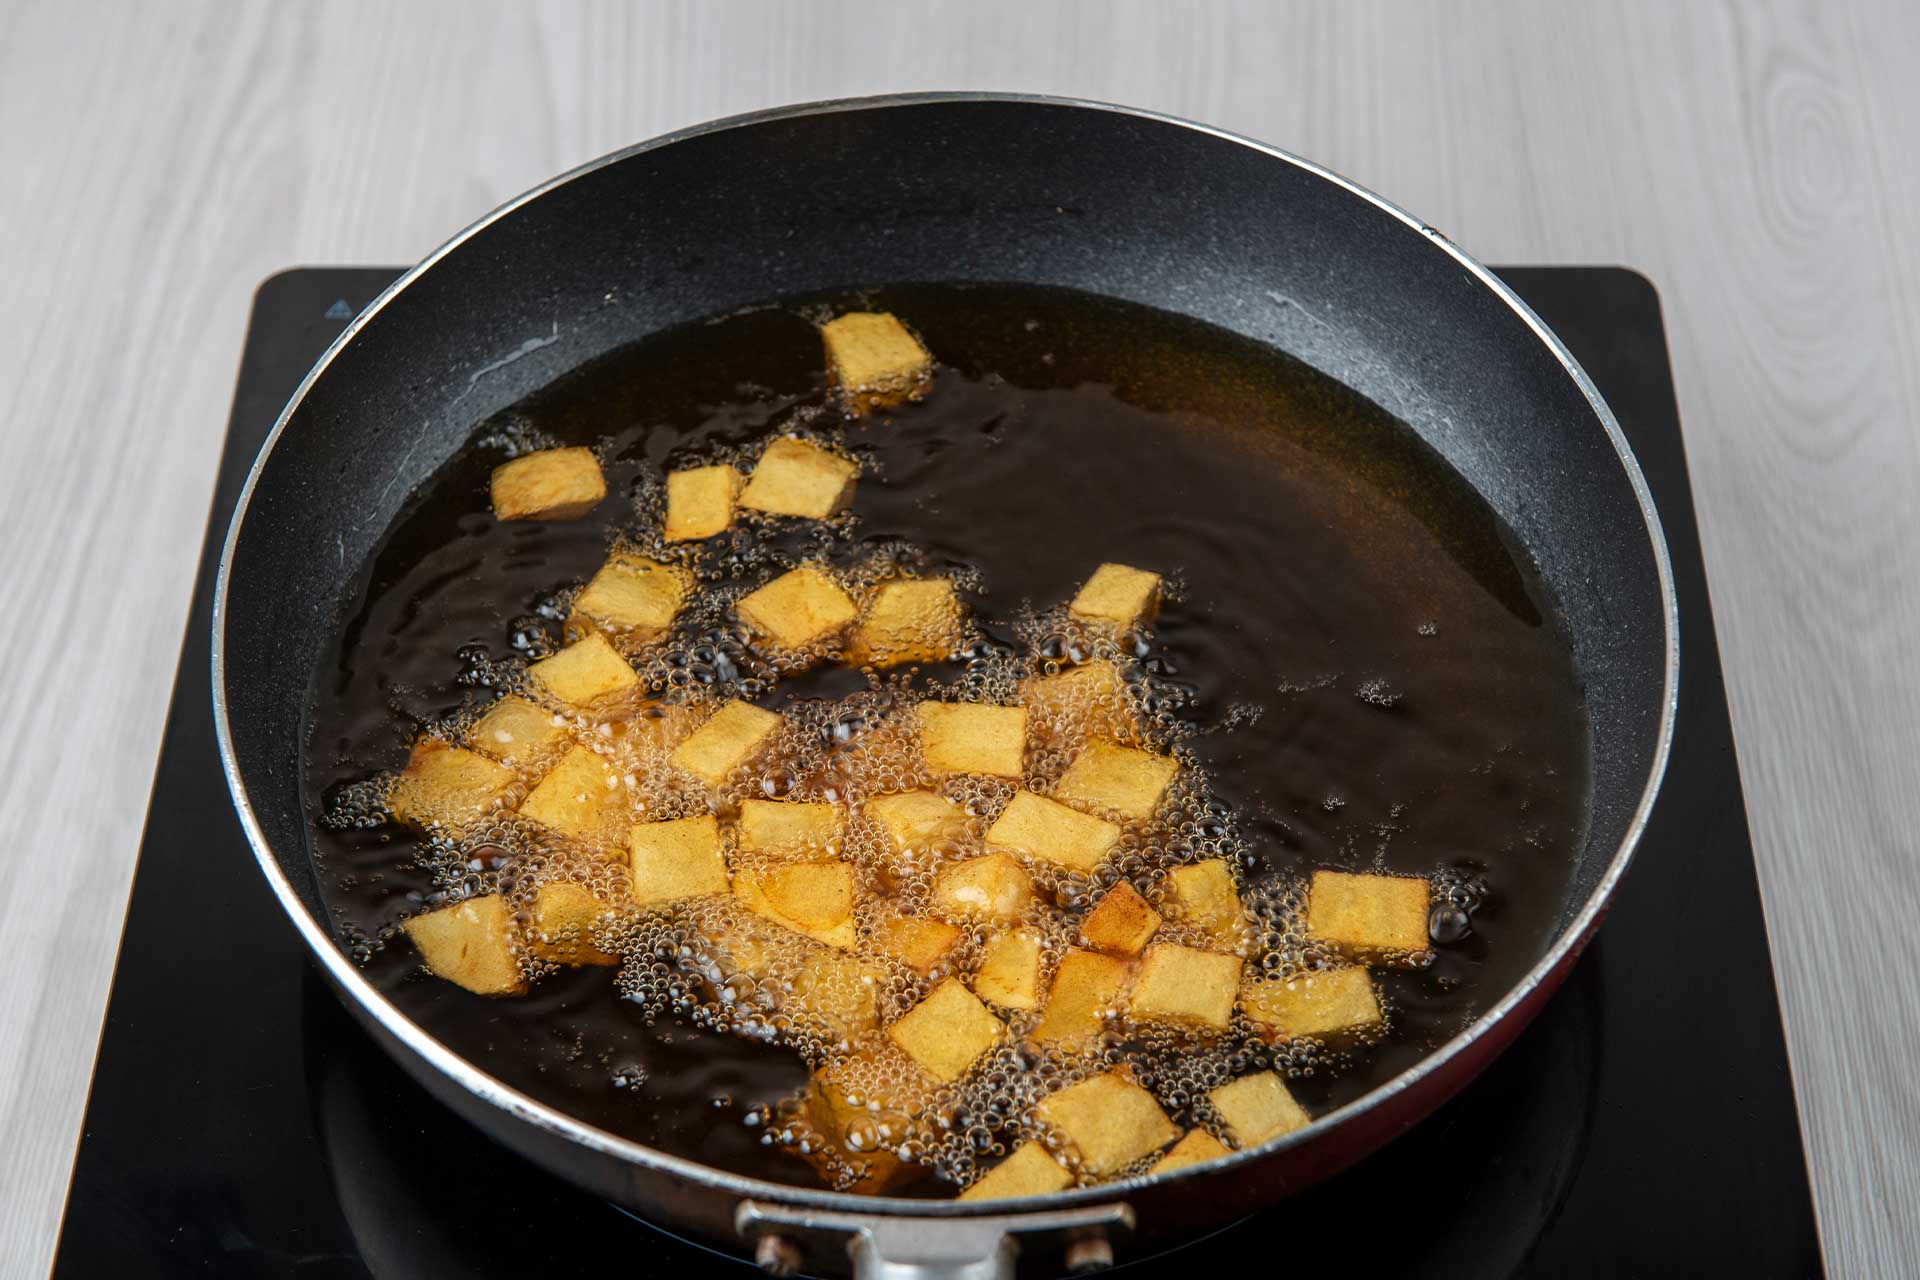 Cook the beef gravel and potatoes